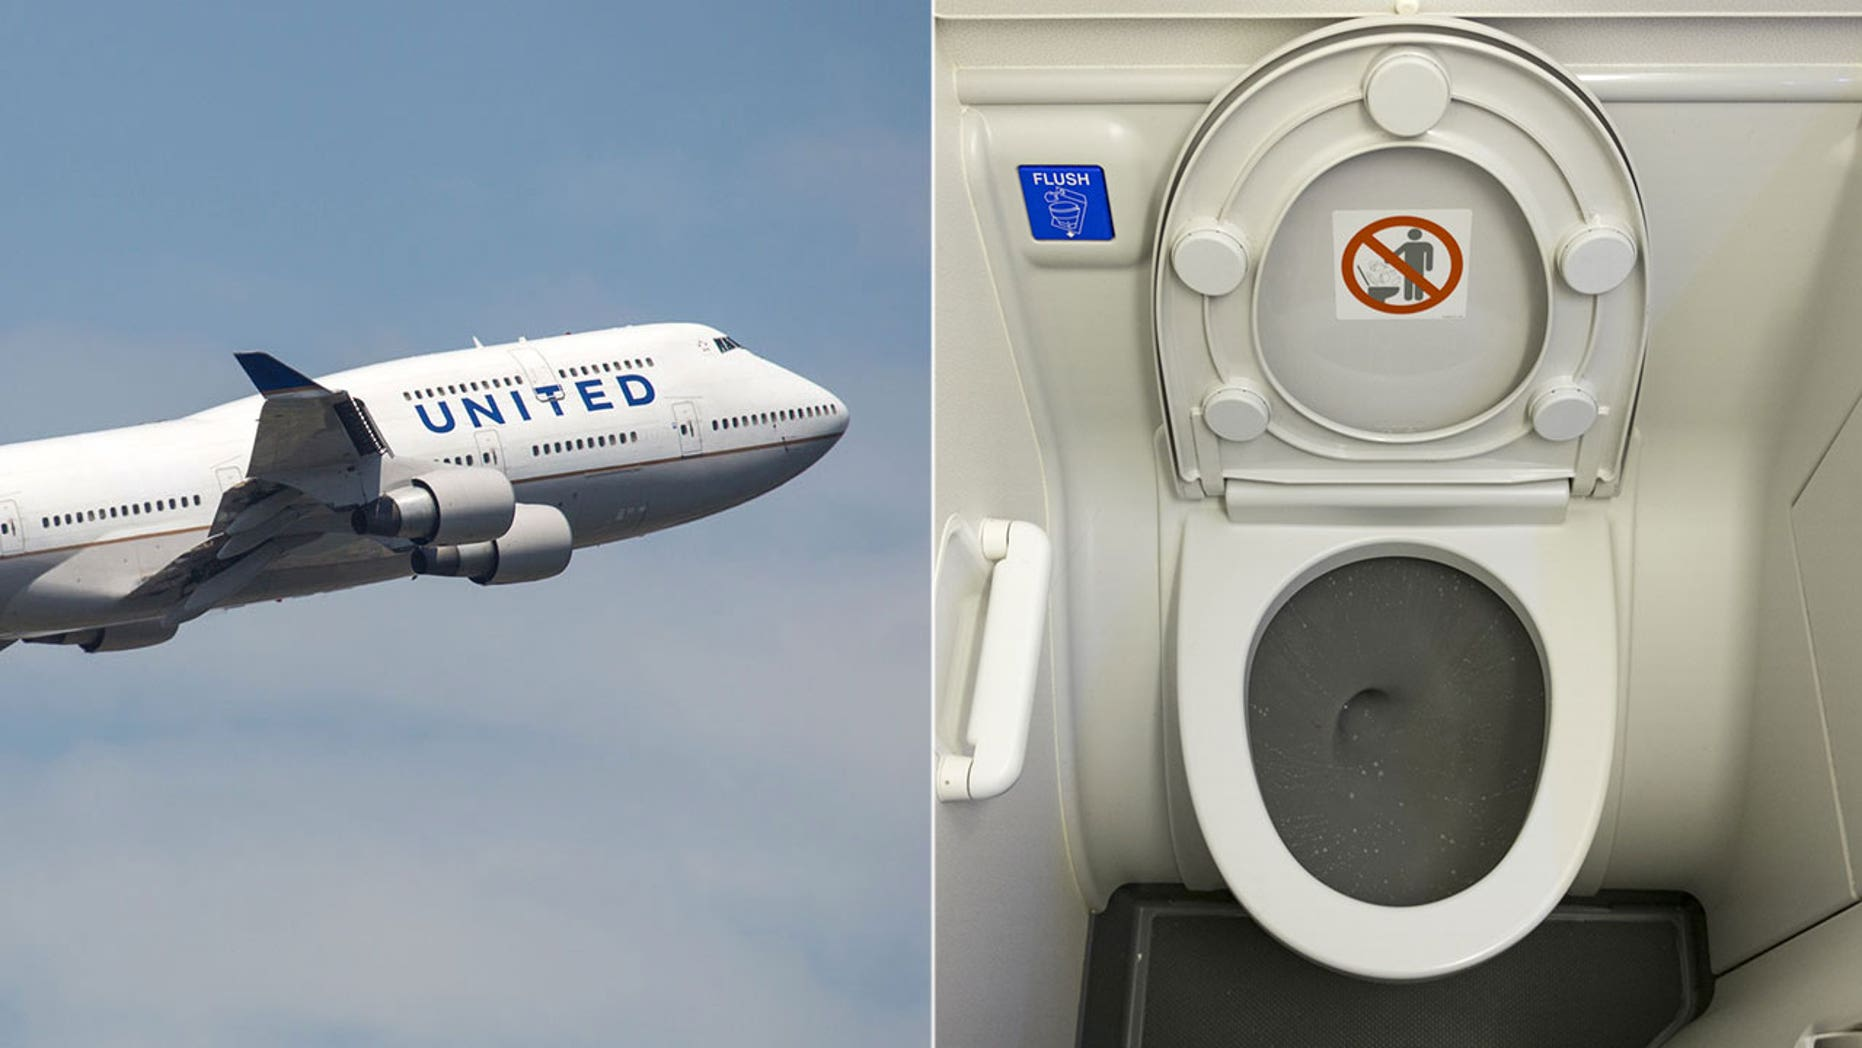 A United flight to Hawaii was diverted to San Francisco on Sunday because its lavatories weren't properly serviced before takeoff.